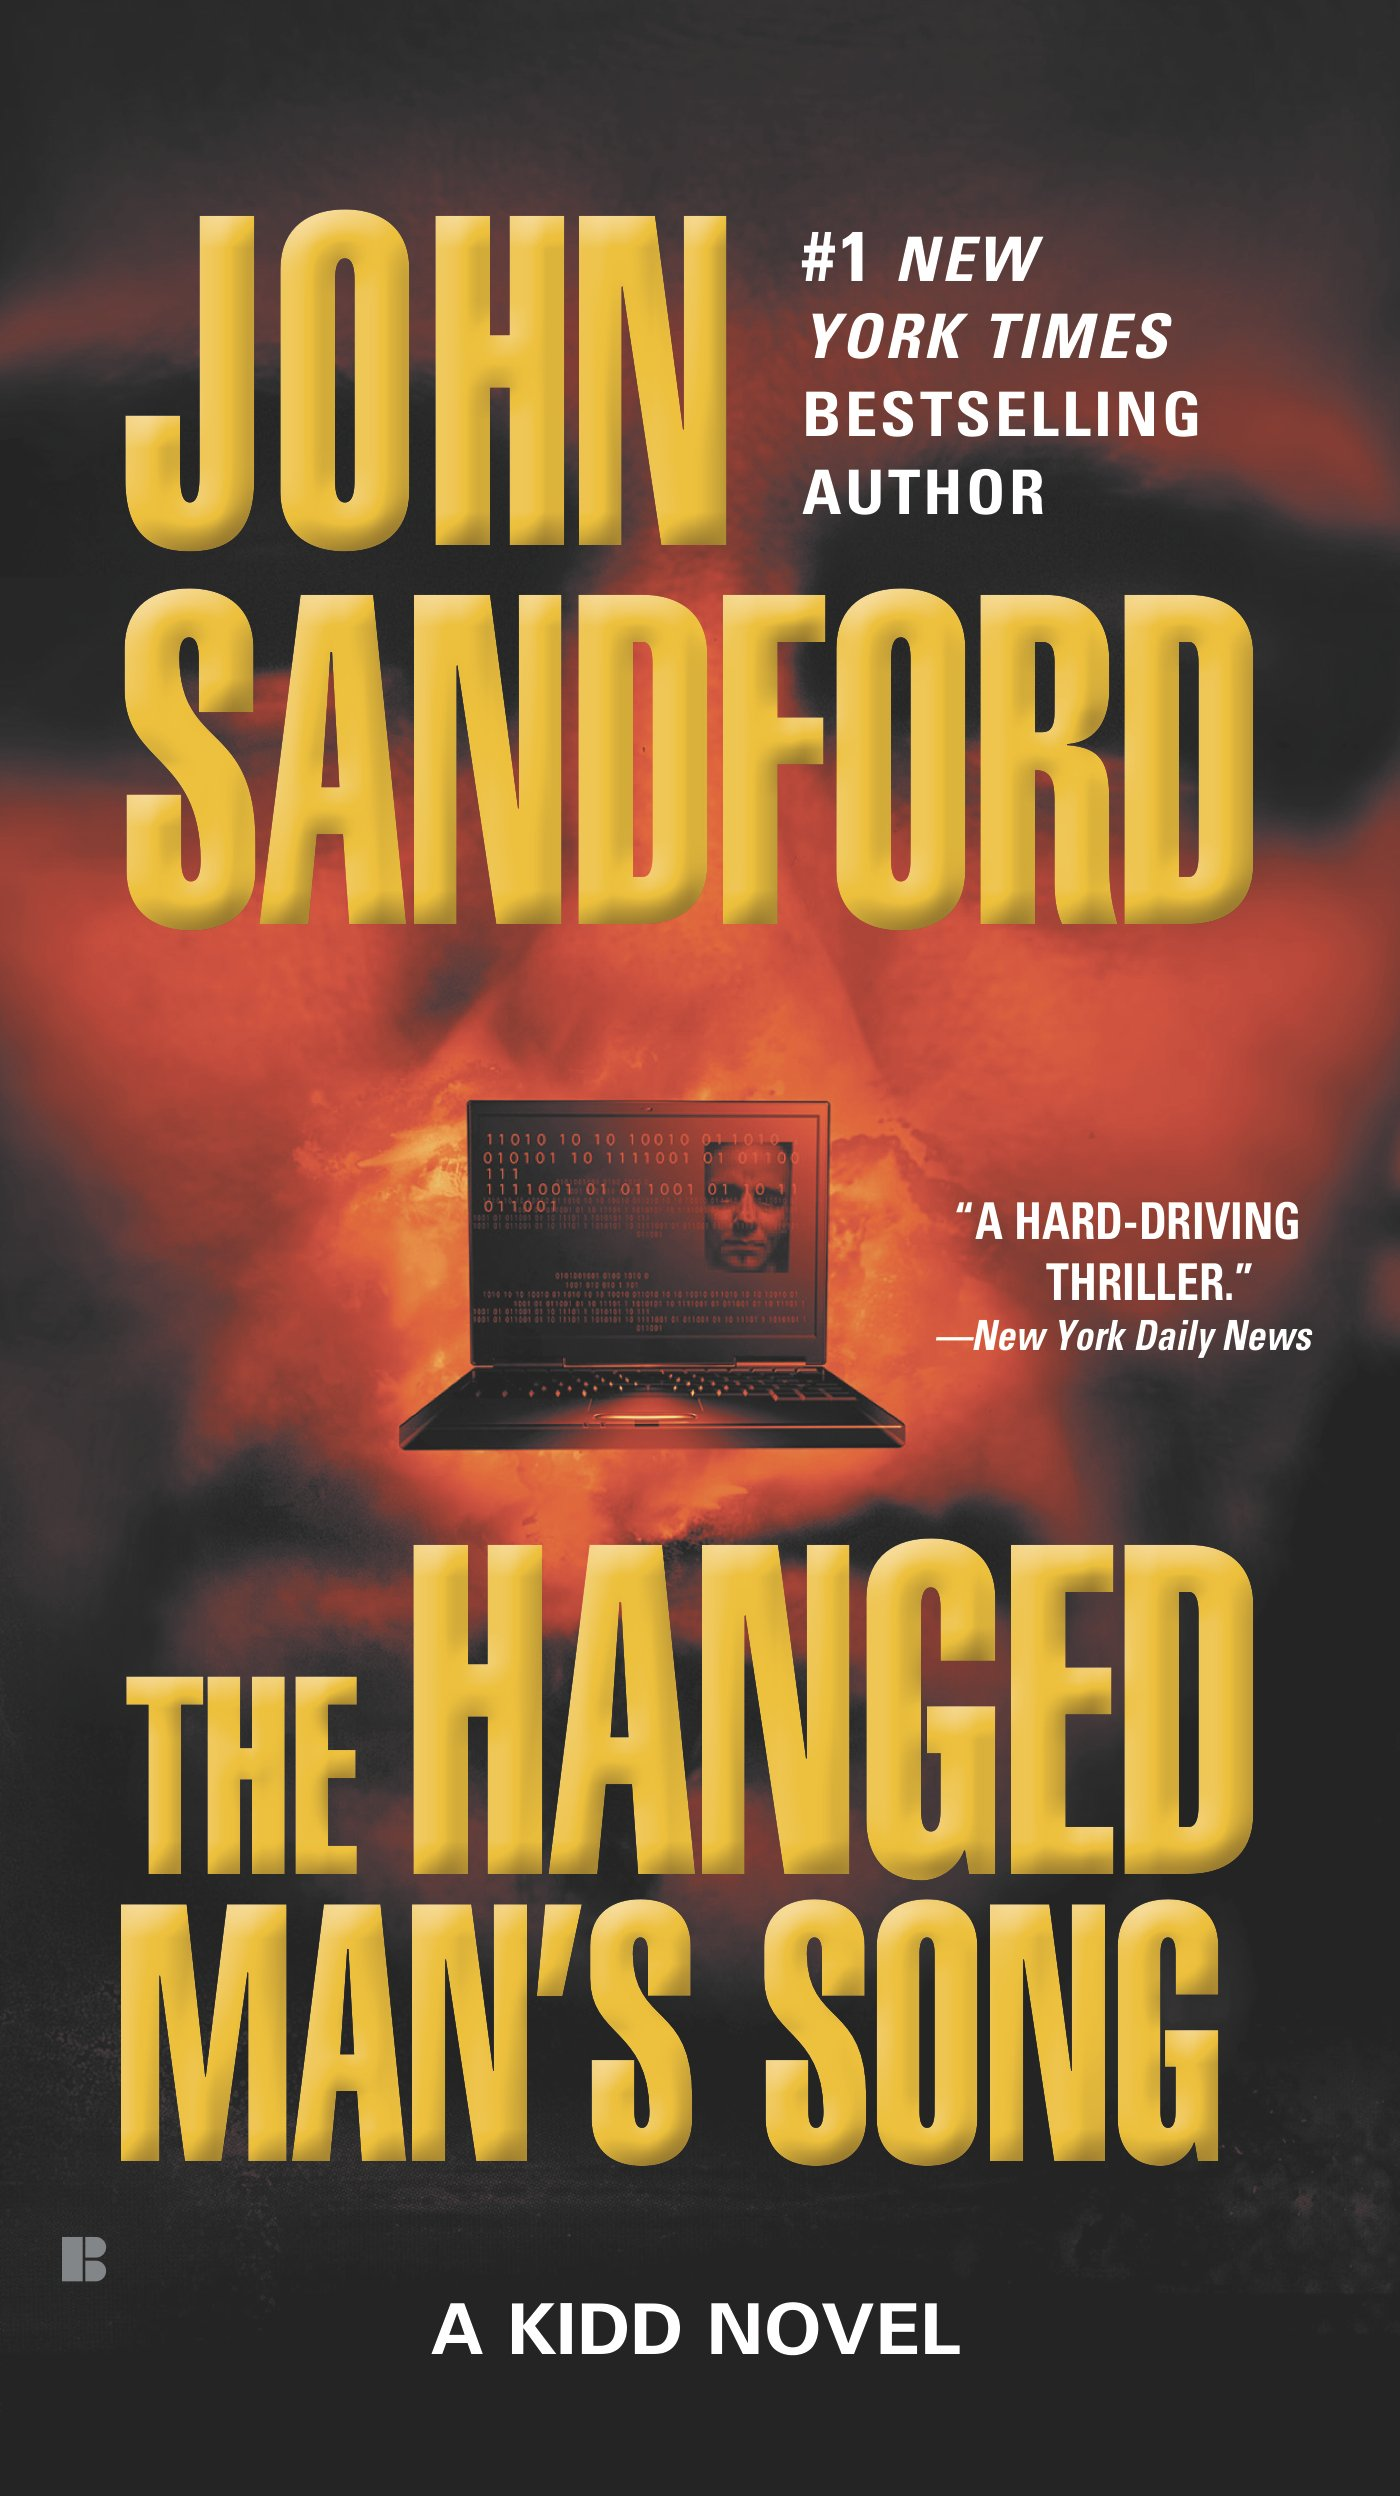 The Hanged Man's Song (kidd): John Sandford: 9780425199107: Amazon:  Books